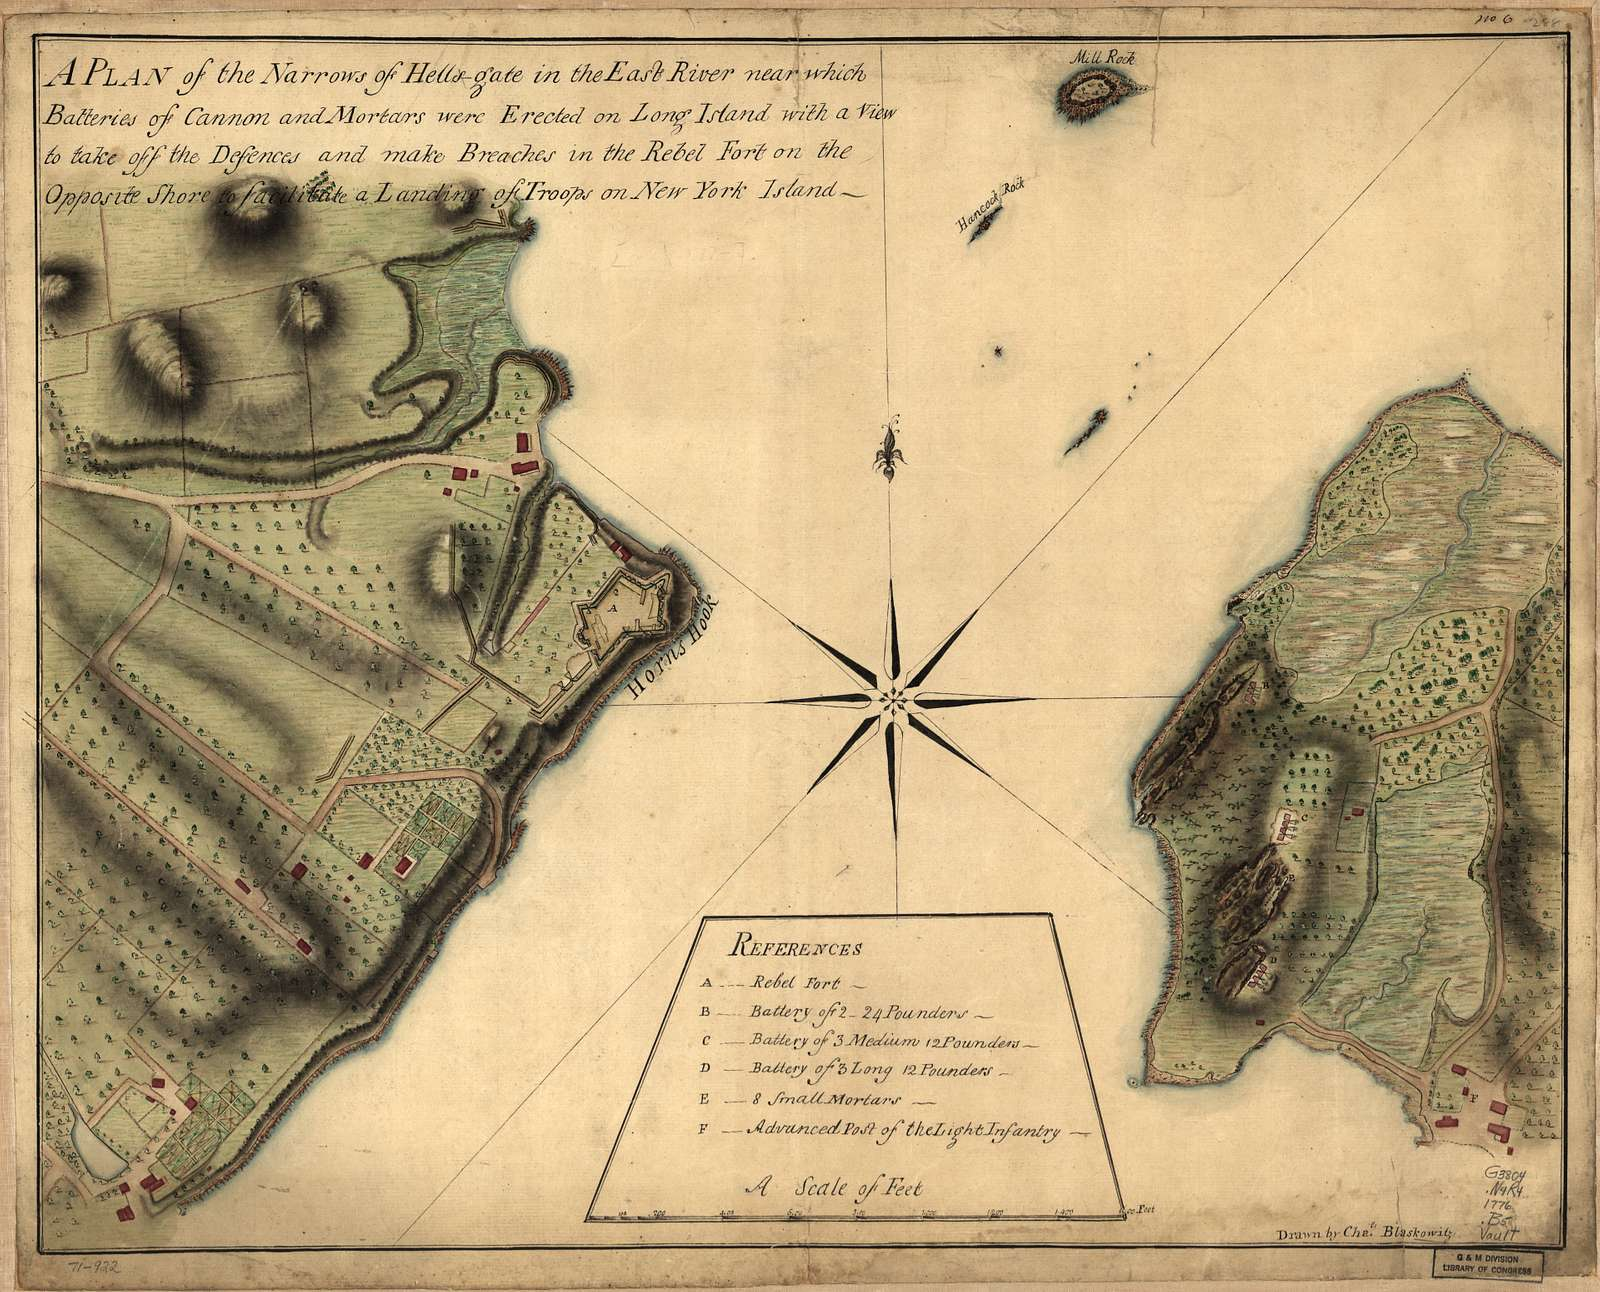 A plan of the Narrows of Hells-gate in the East River, near which batteries of cannon and mortars were erected on Long Island with a view to take off the defences and make breaches in the rebel fort on the opposite shore to facilitate a landing of troops on New York Island.